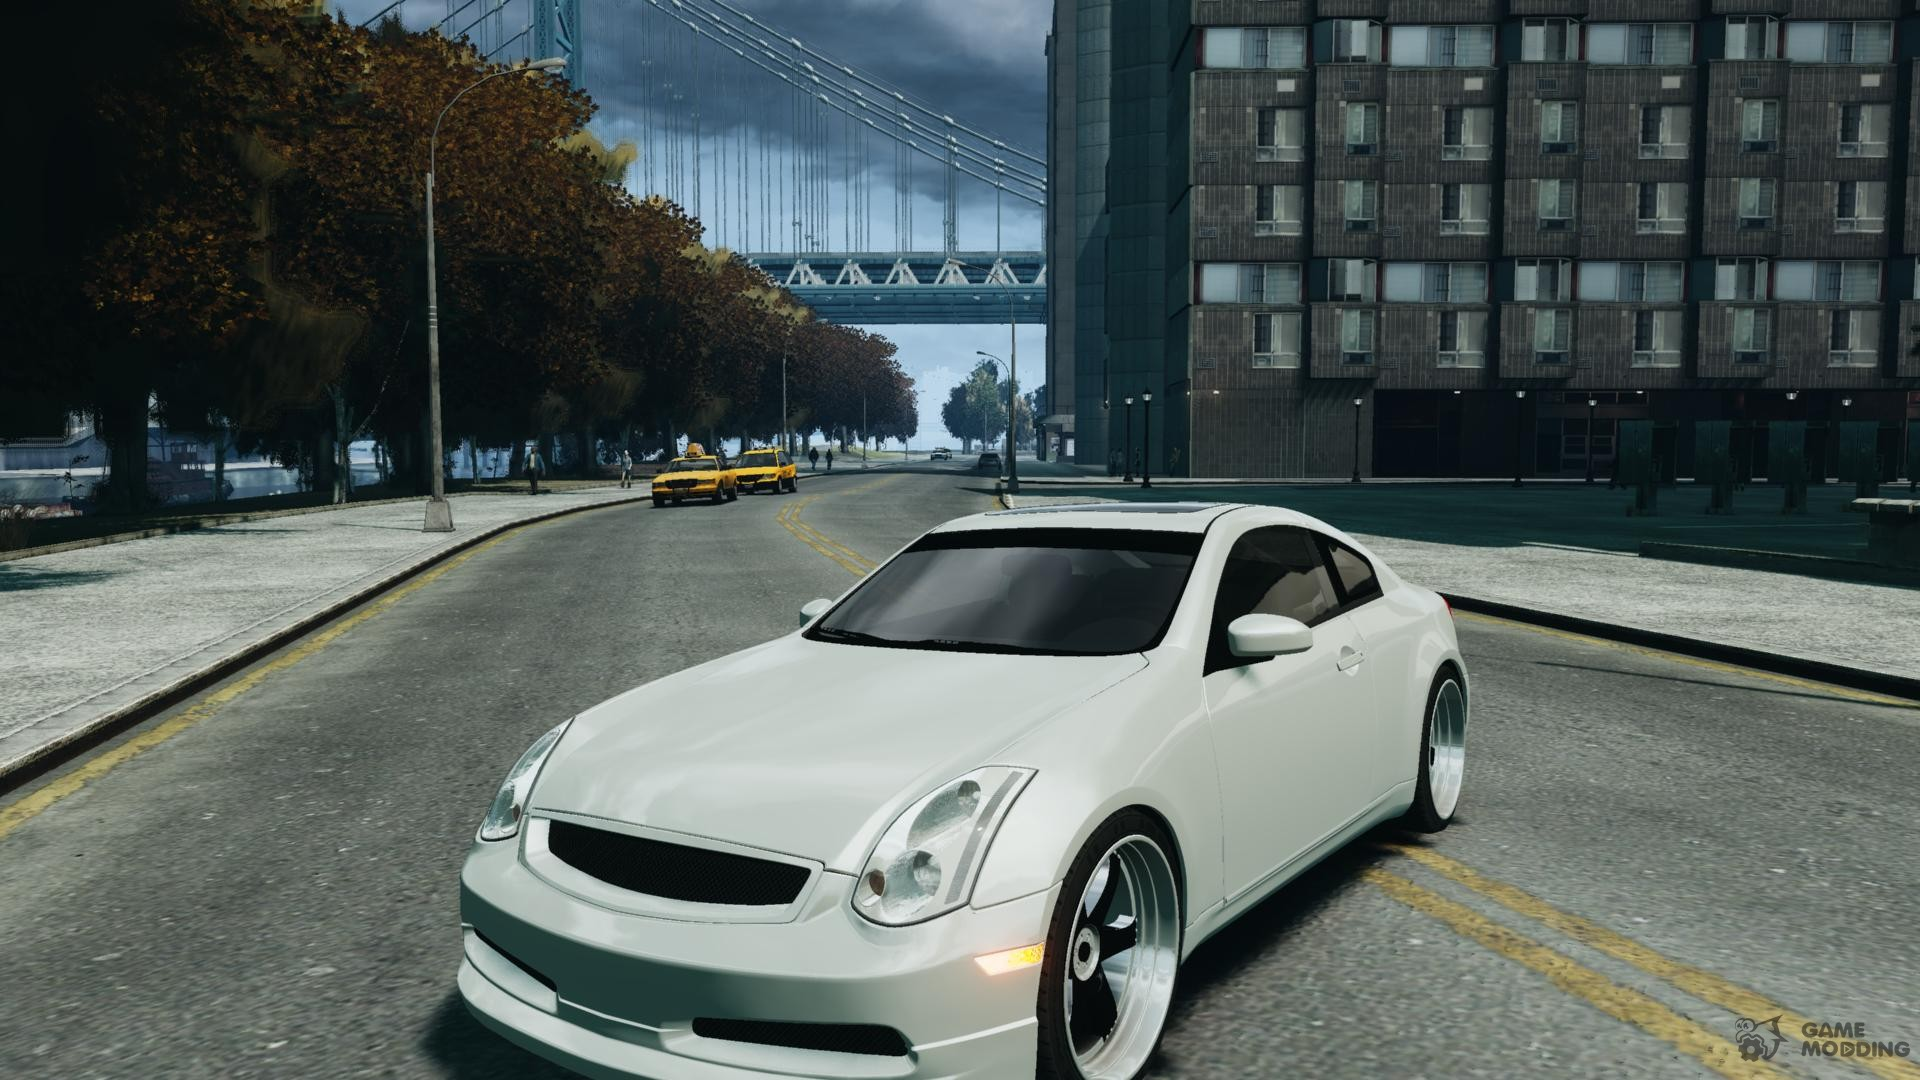 G35 coupe 2003 jdm tune for gta 4 infiniti g35 coupe 2003 jdm tune for gta 4 vanachro Image collections